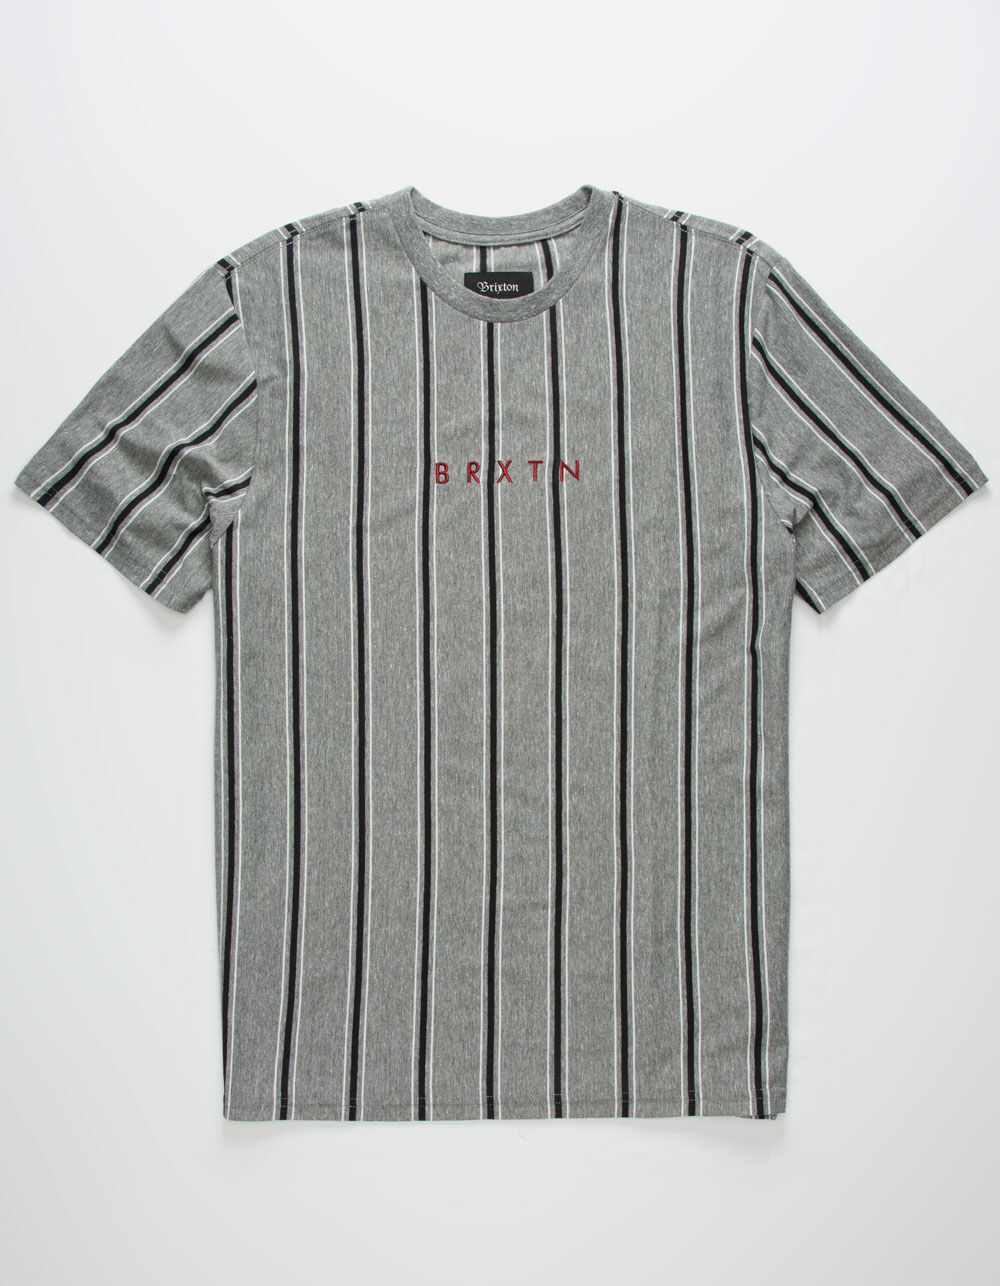 BRIXTON Hilt II Heather Black Stripe T-Shirt